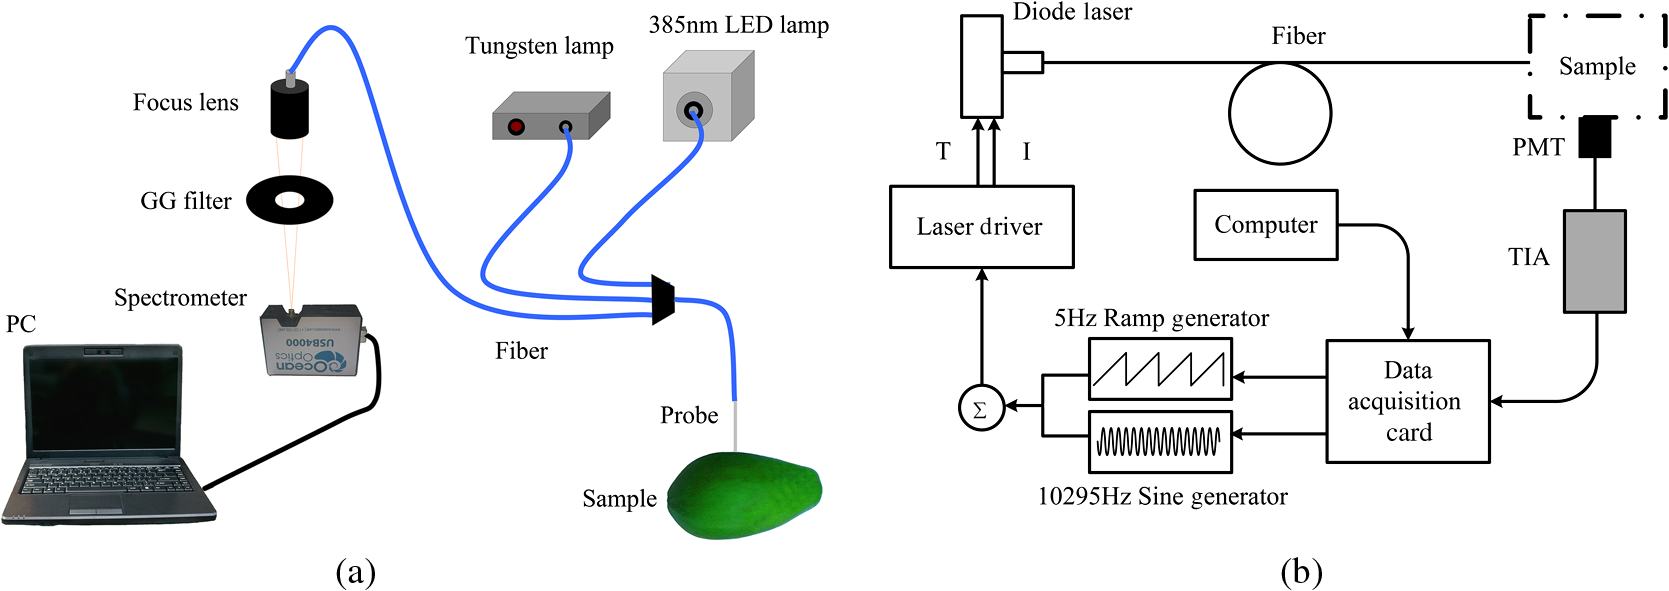 Studies Of Tropical Fruit Ripening Using Three Different Transimpedance Amplifiers Information Engineering360 The Monitoring Second Harmonic Wavelength Modulation Spectroscopy 2f Wms Signal Oxygen Gasmas B Tia Is A Amplifier